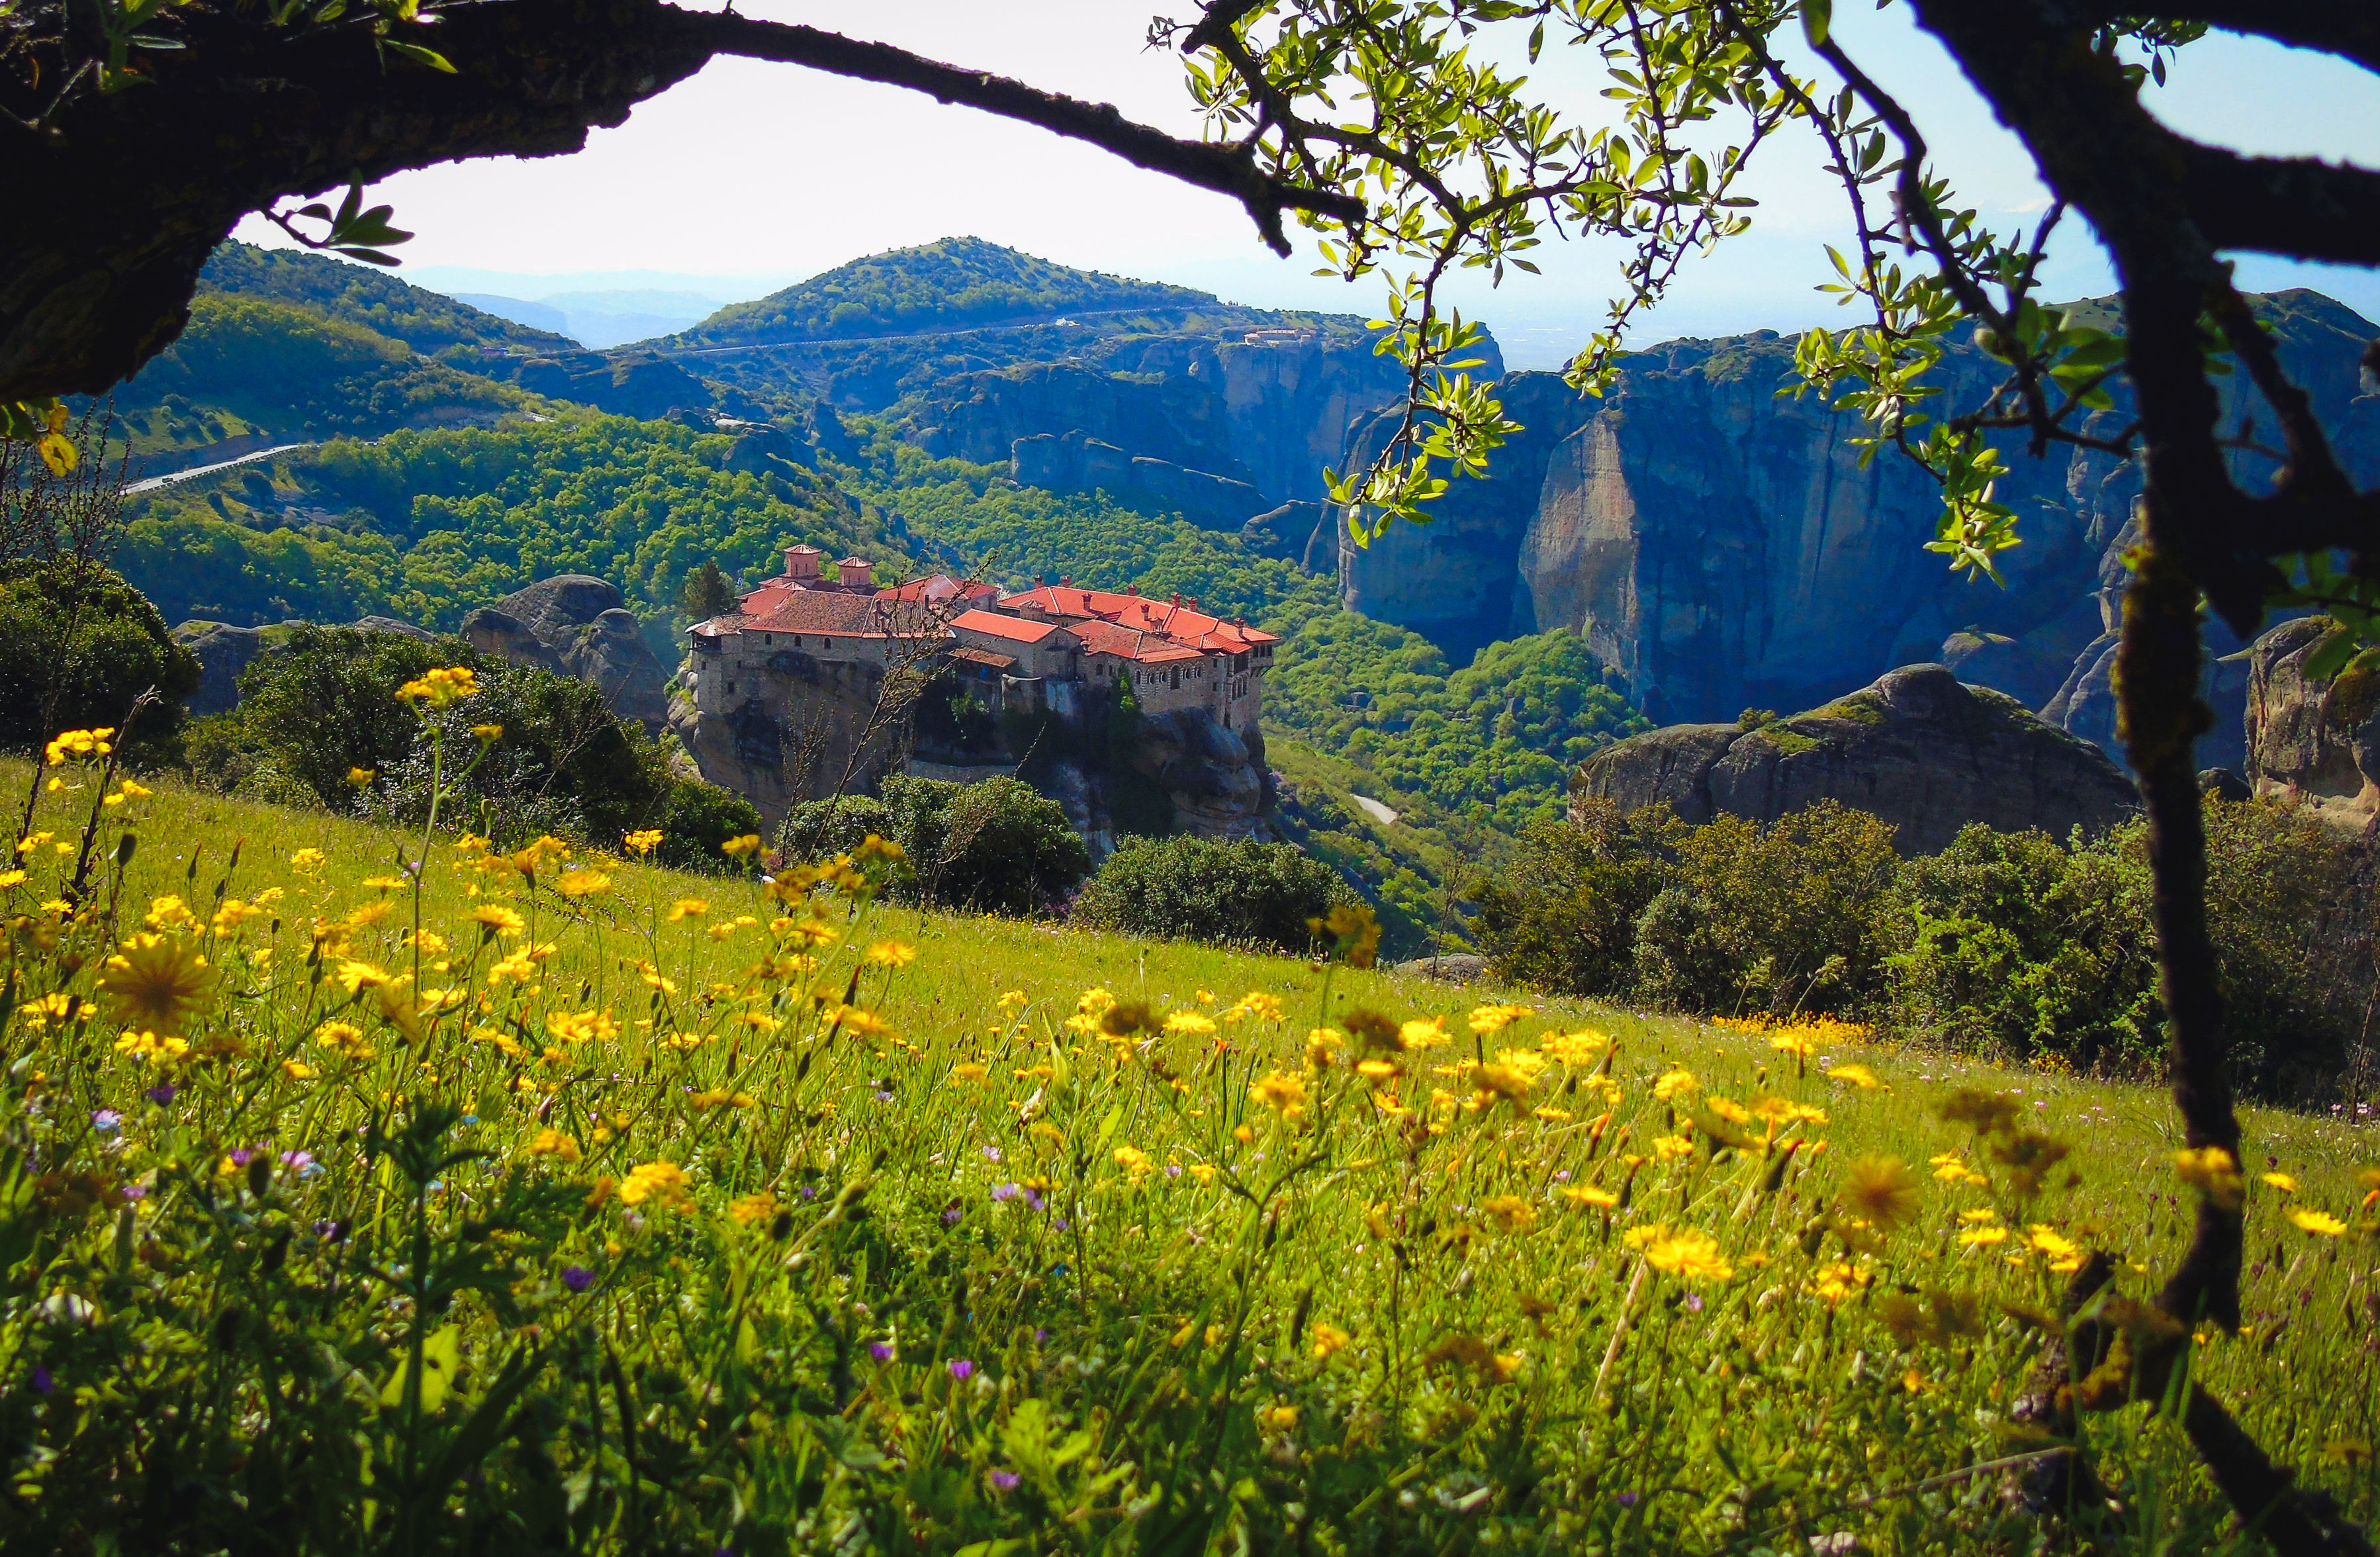 Spring in Meteora is especially beautiful, with nature in full bloom